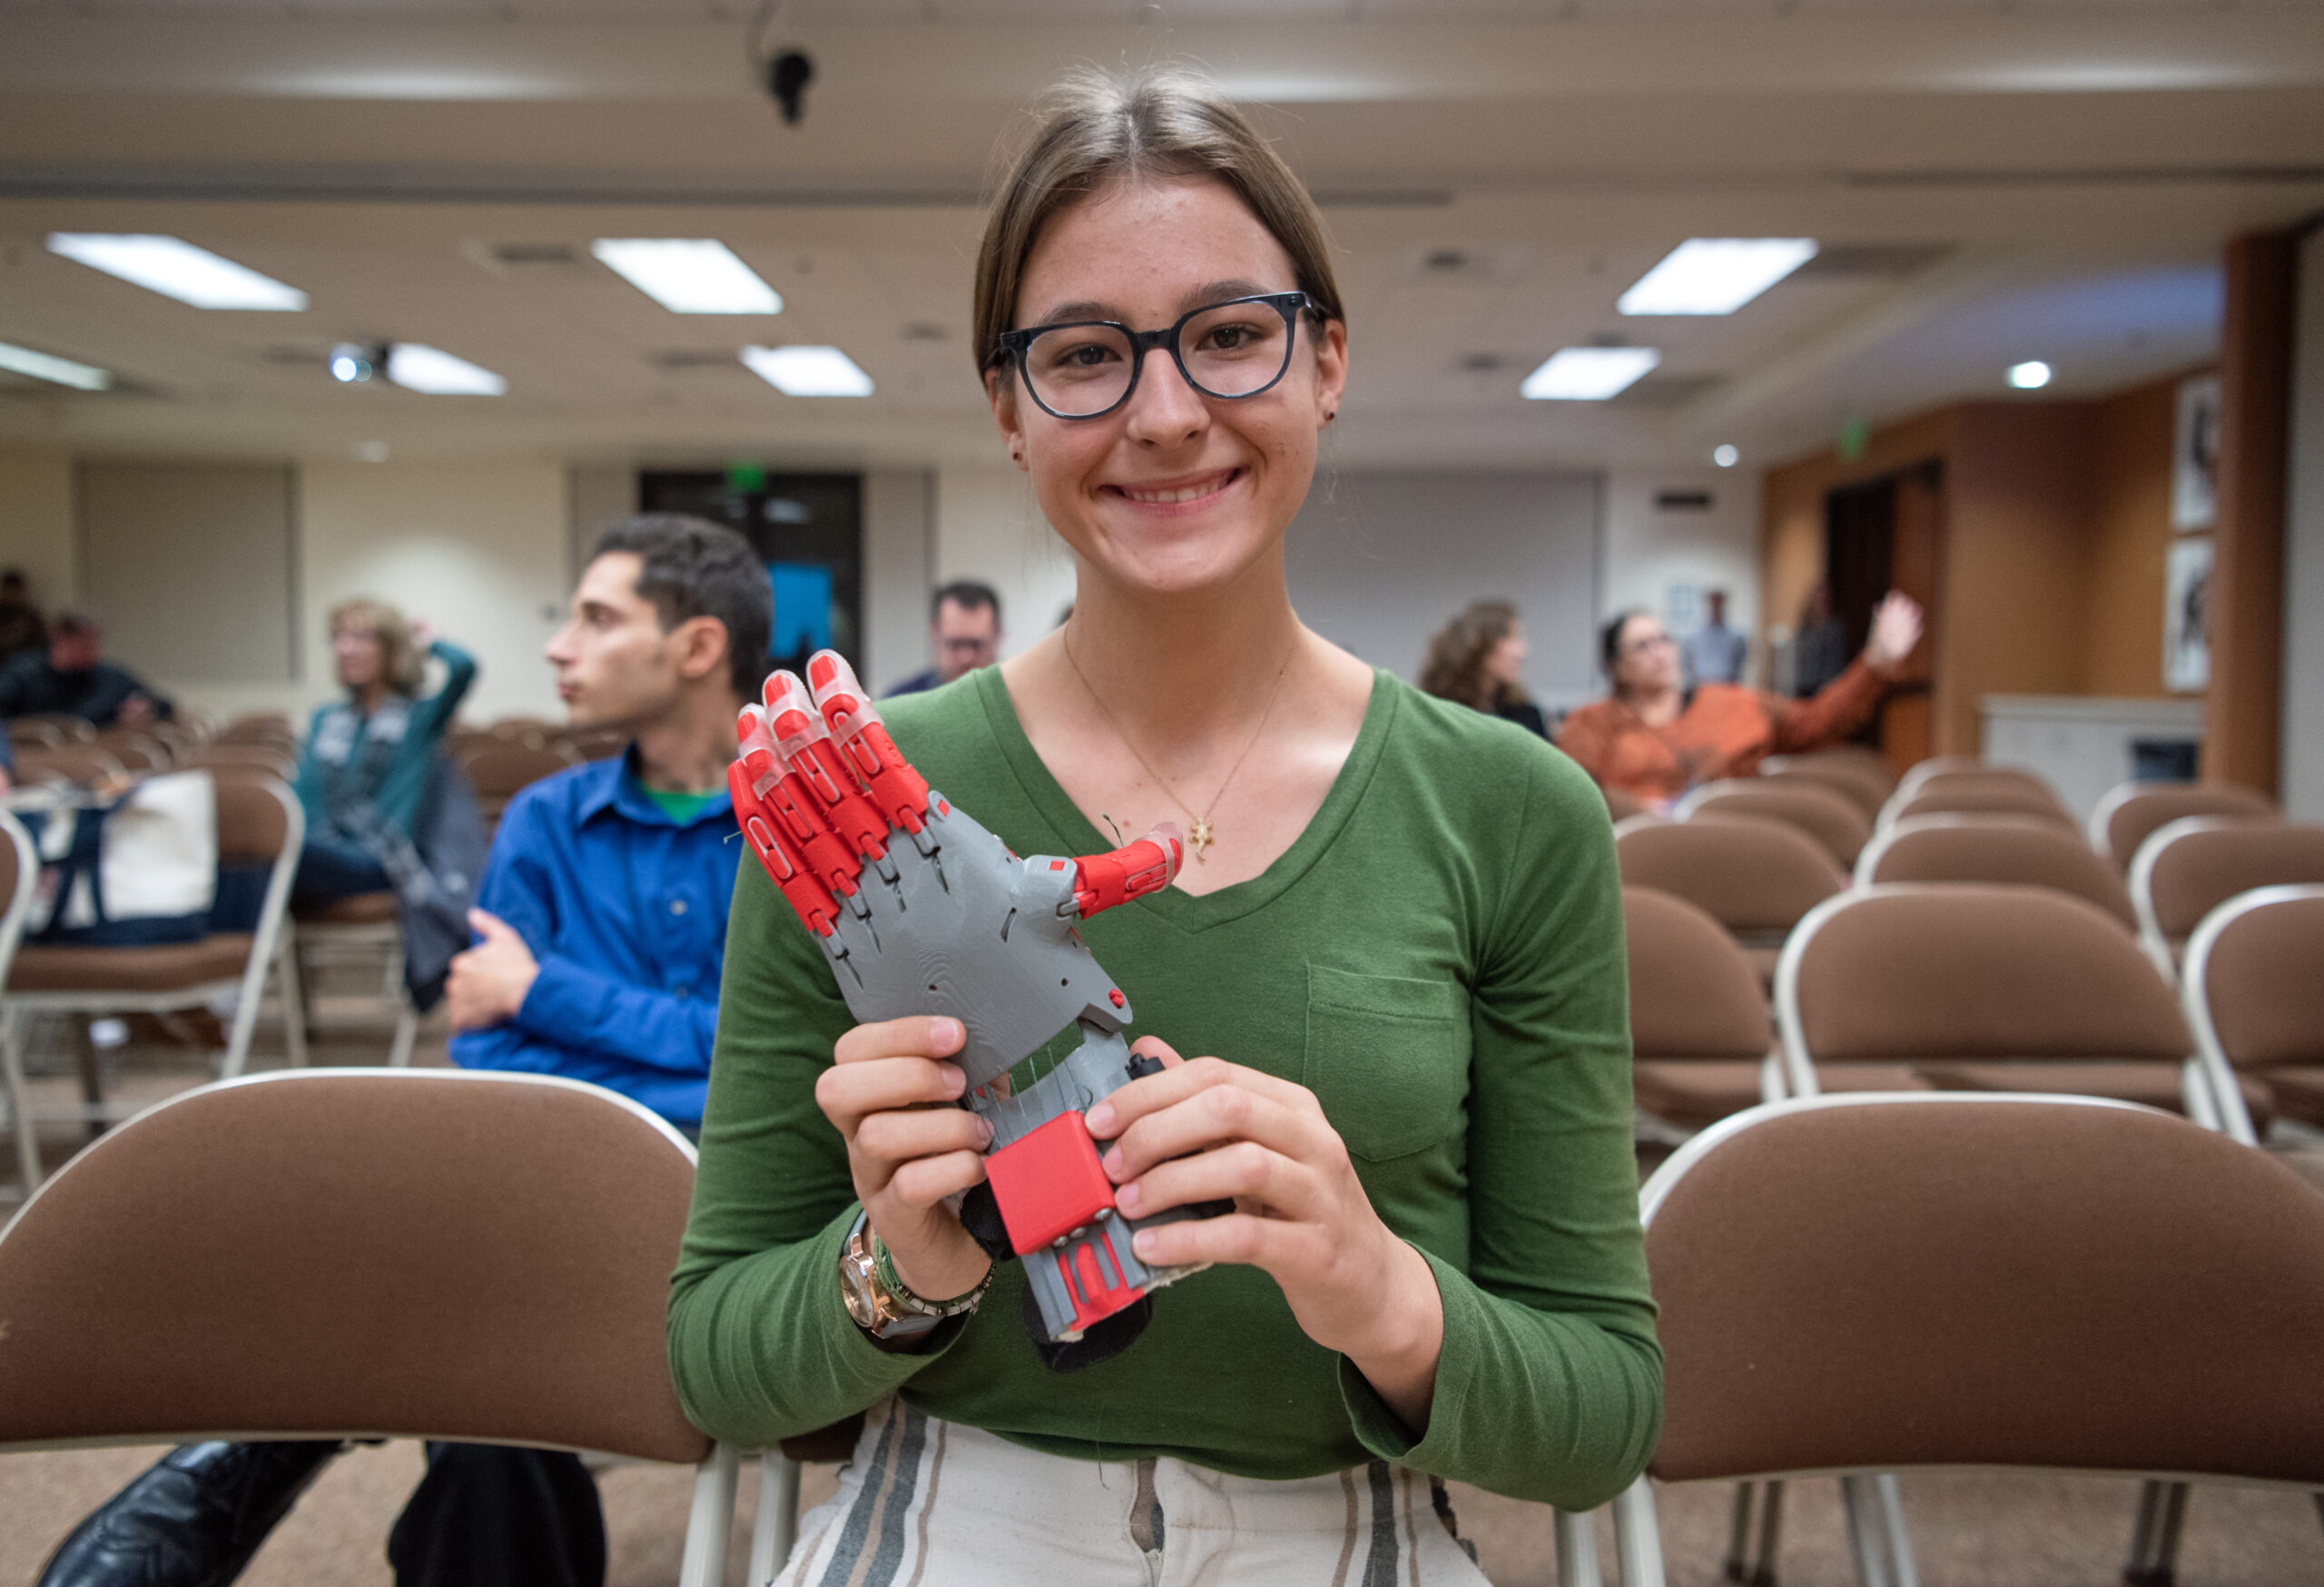 San Juan Hills High Student Creates Prosthetics for Third-World Communities through 3D Printing Class